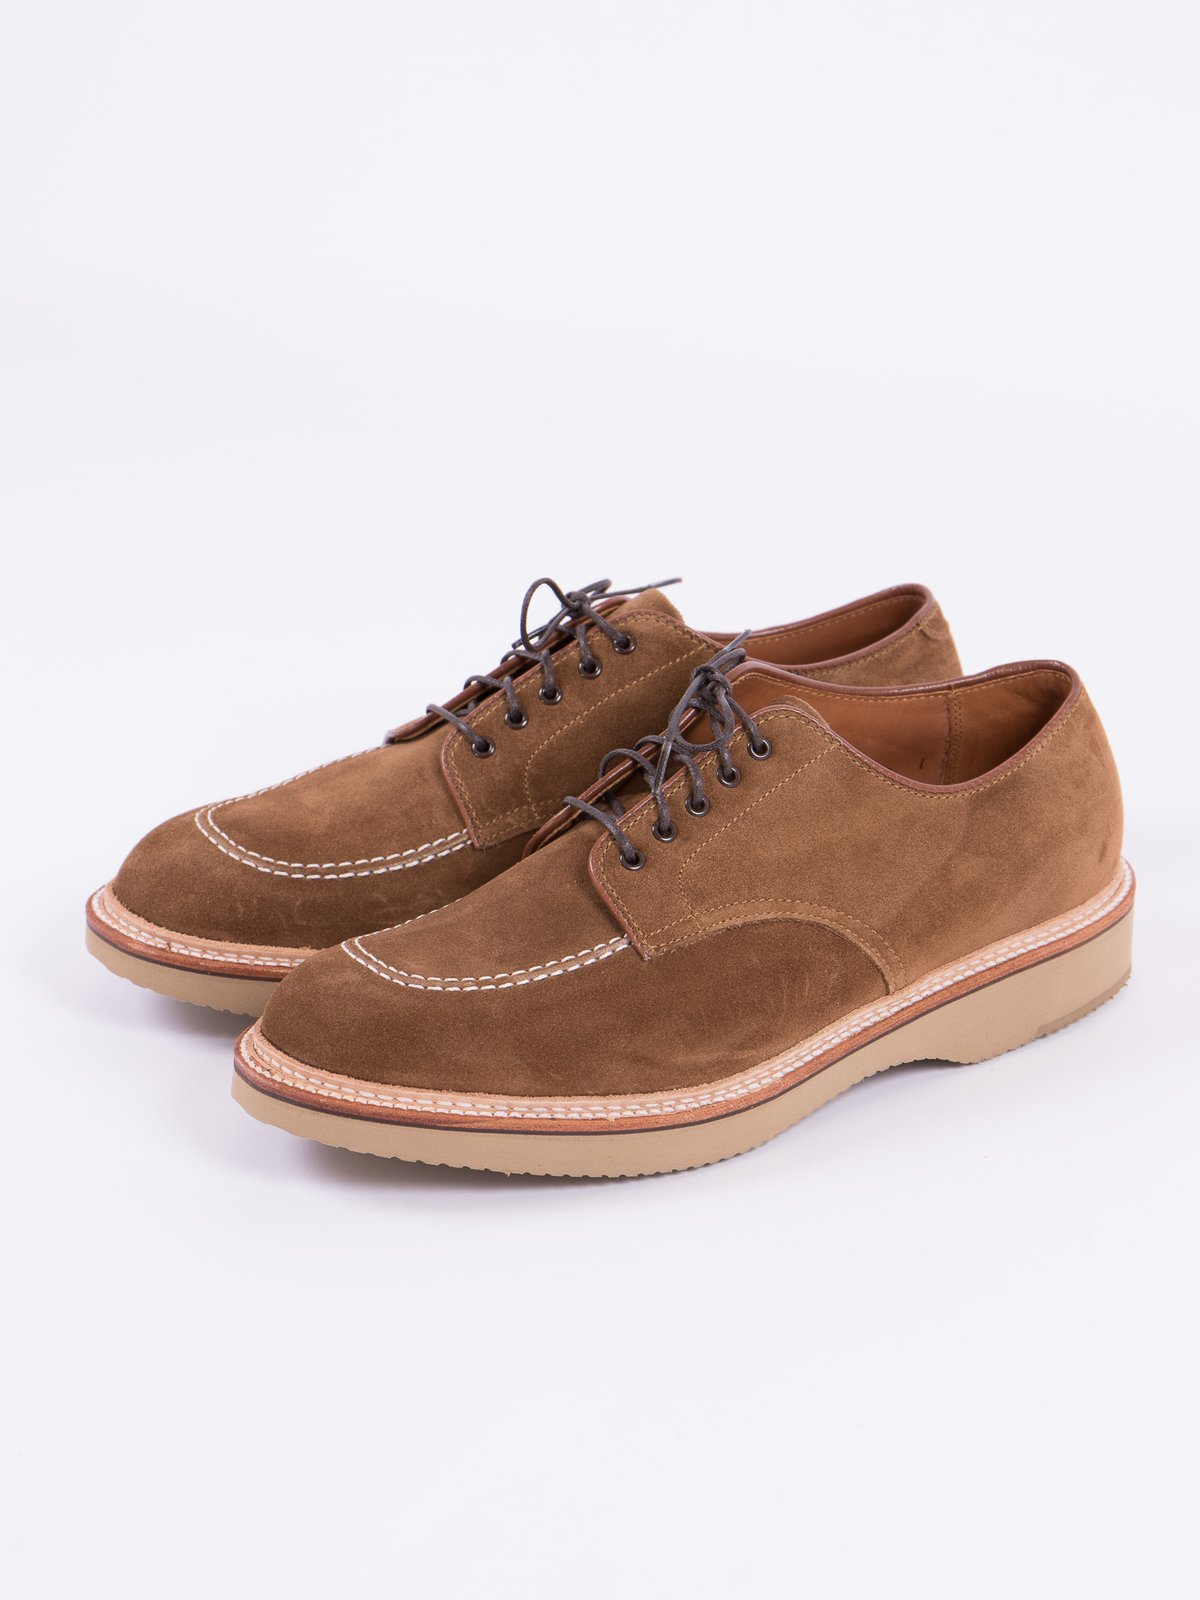 Snuff Suede Indy Work Shoe - Image 3